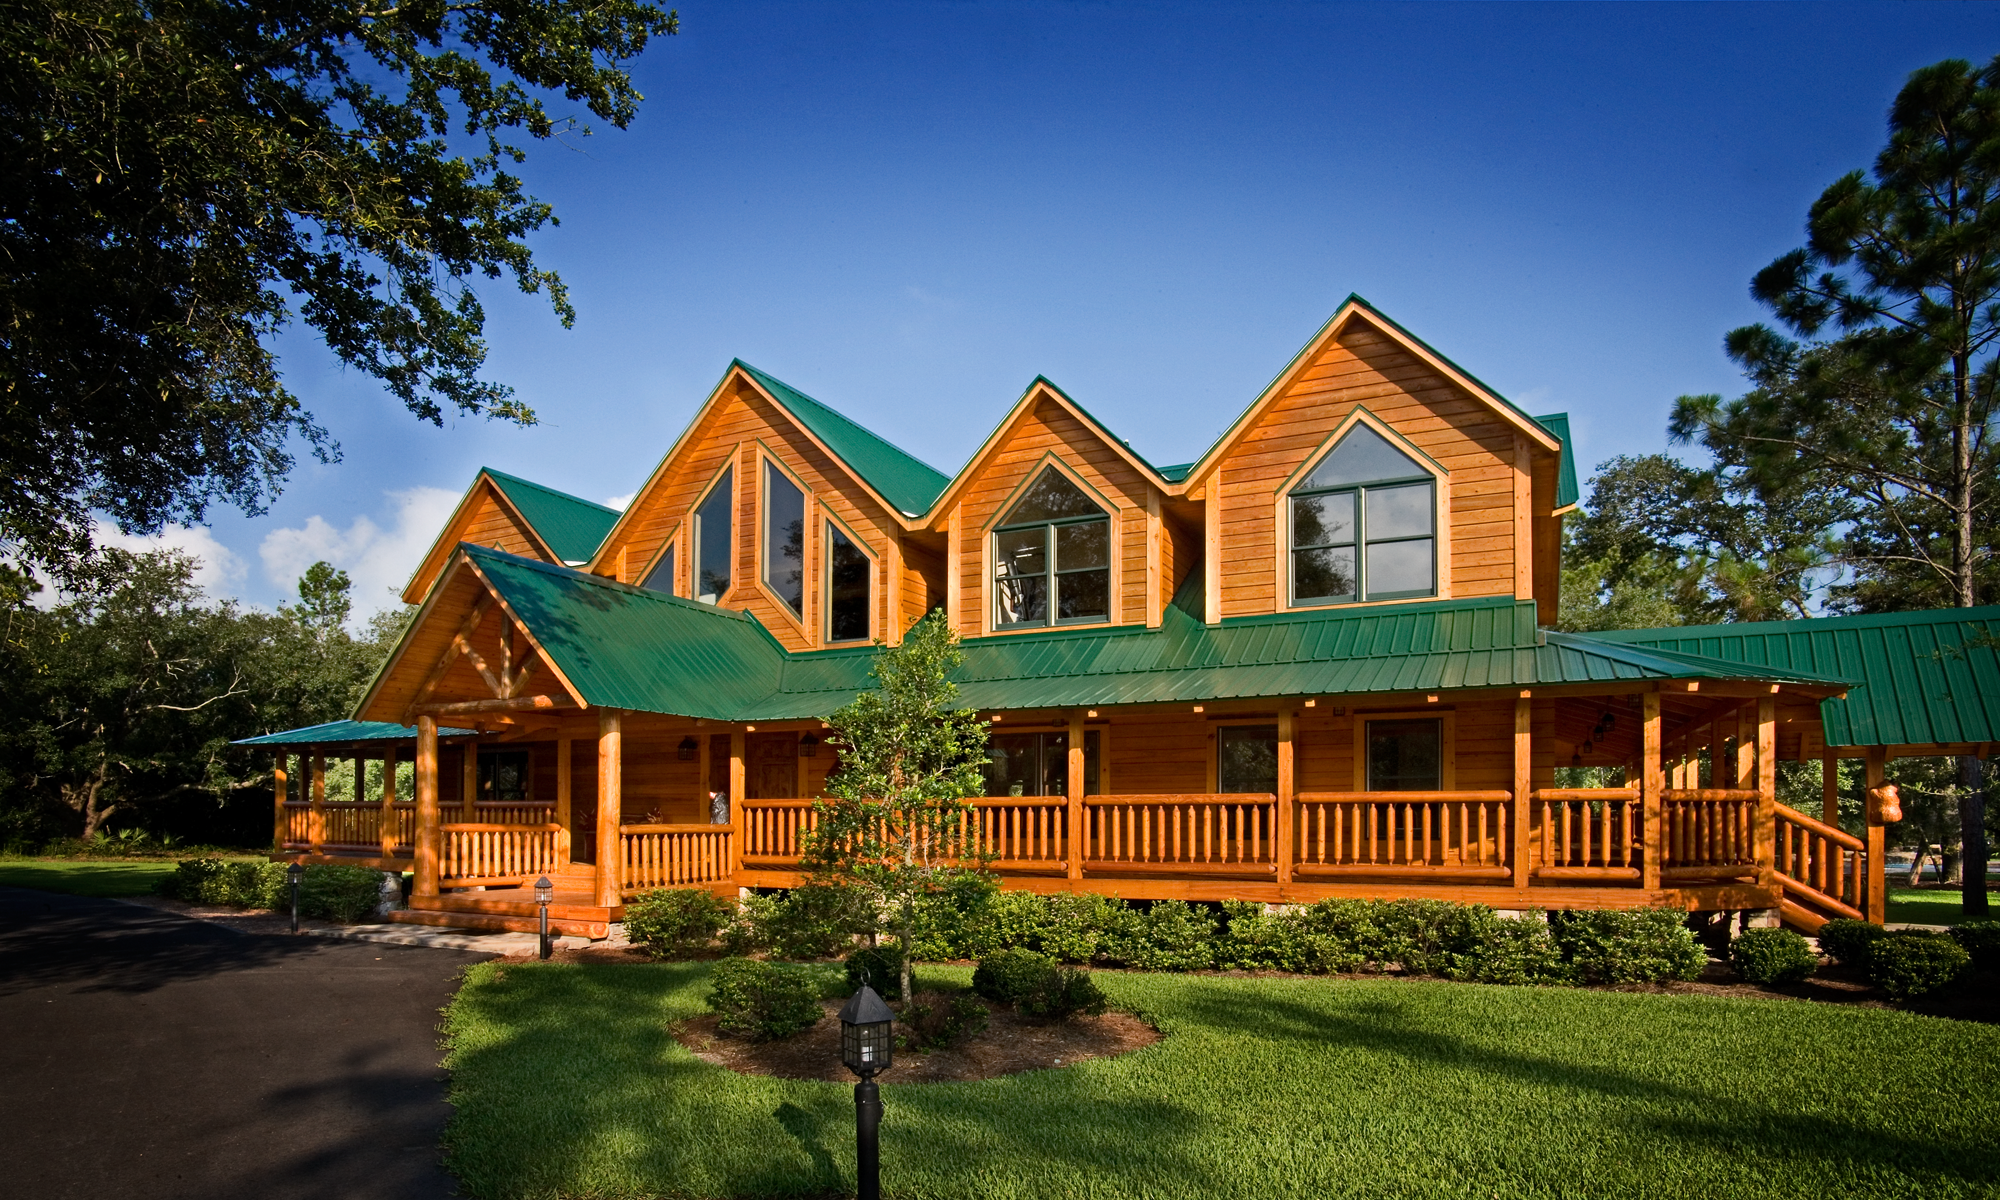 Florida Log Home Staining image 4